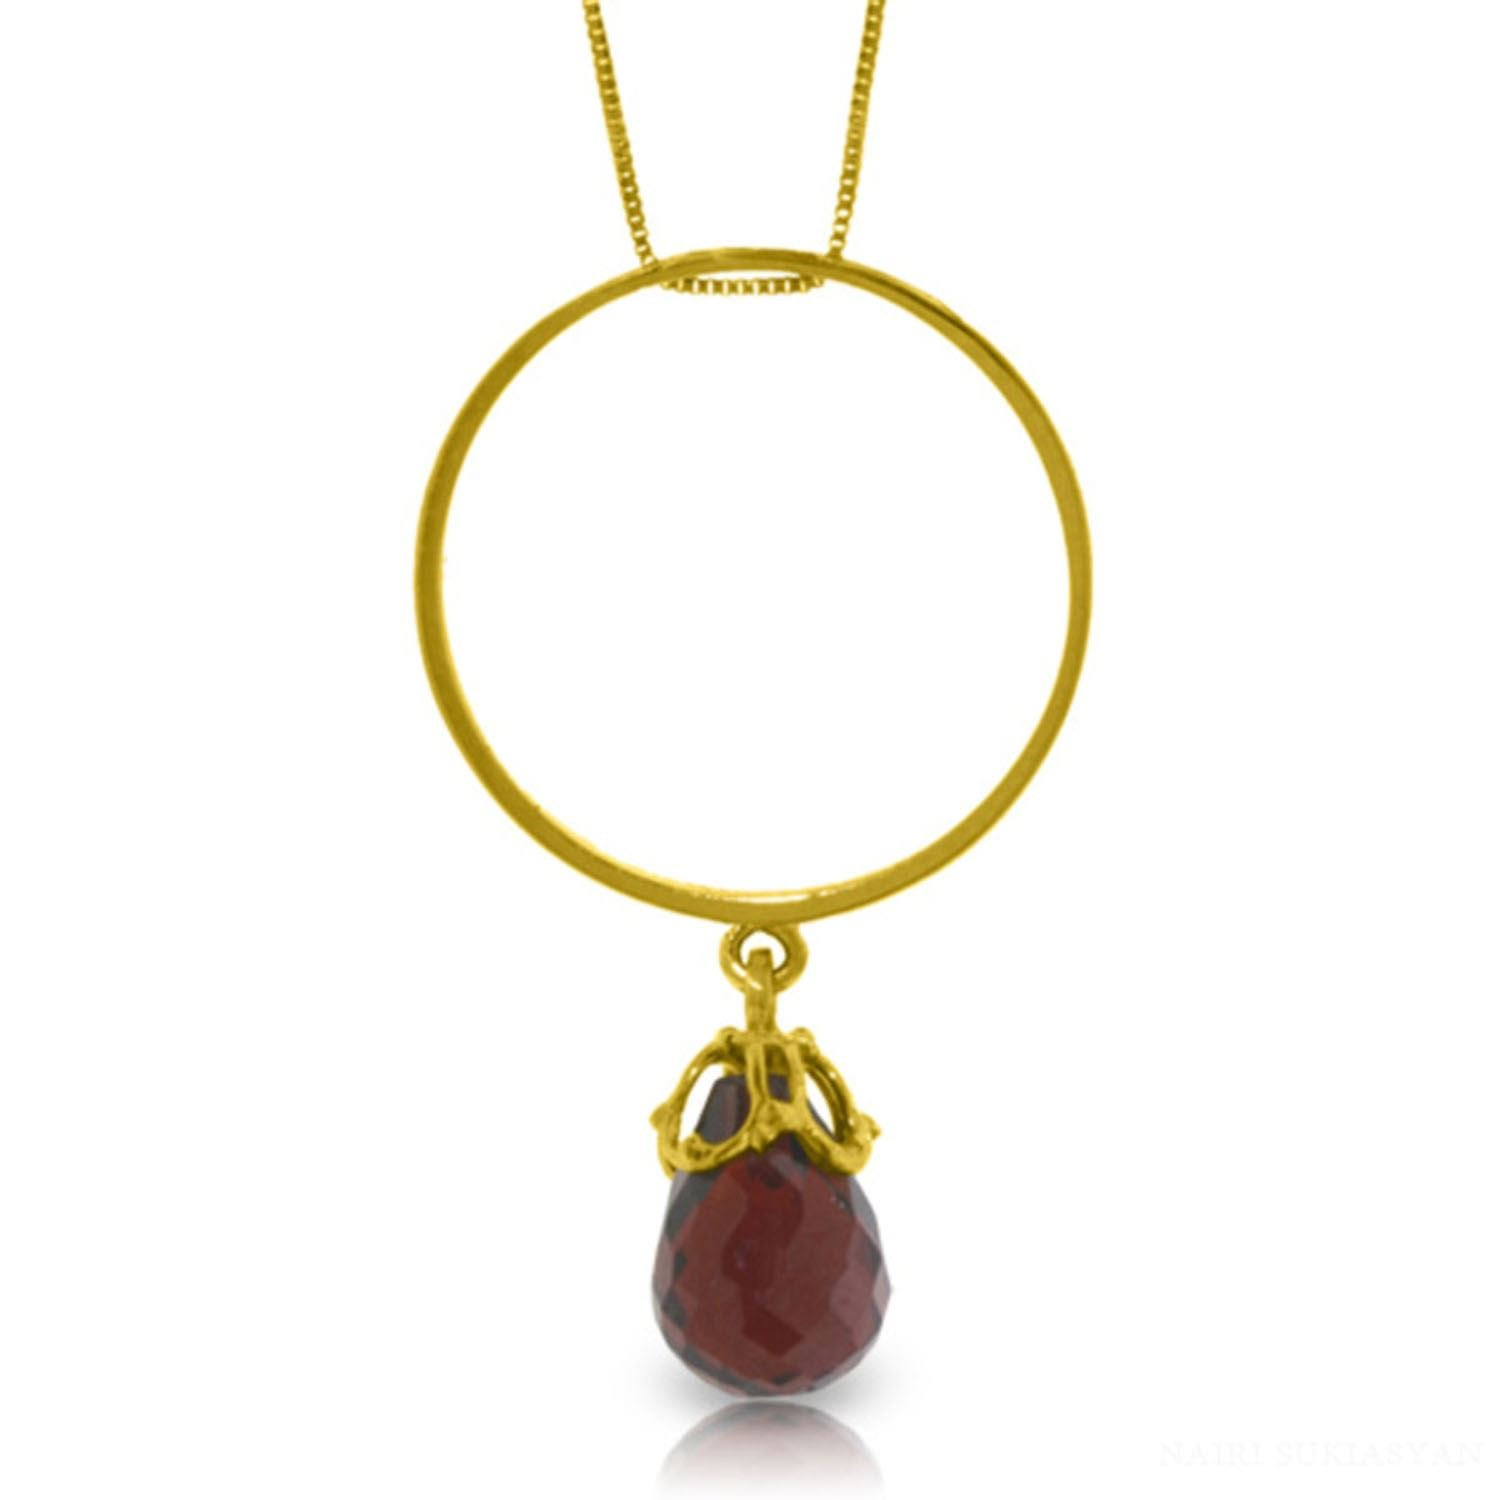 ALARRI 3 Carat 14K Solid Gold Charming Spectator Garnet Necklace with 18 Inch Chain Length